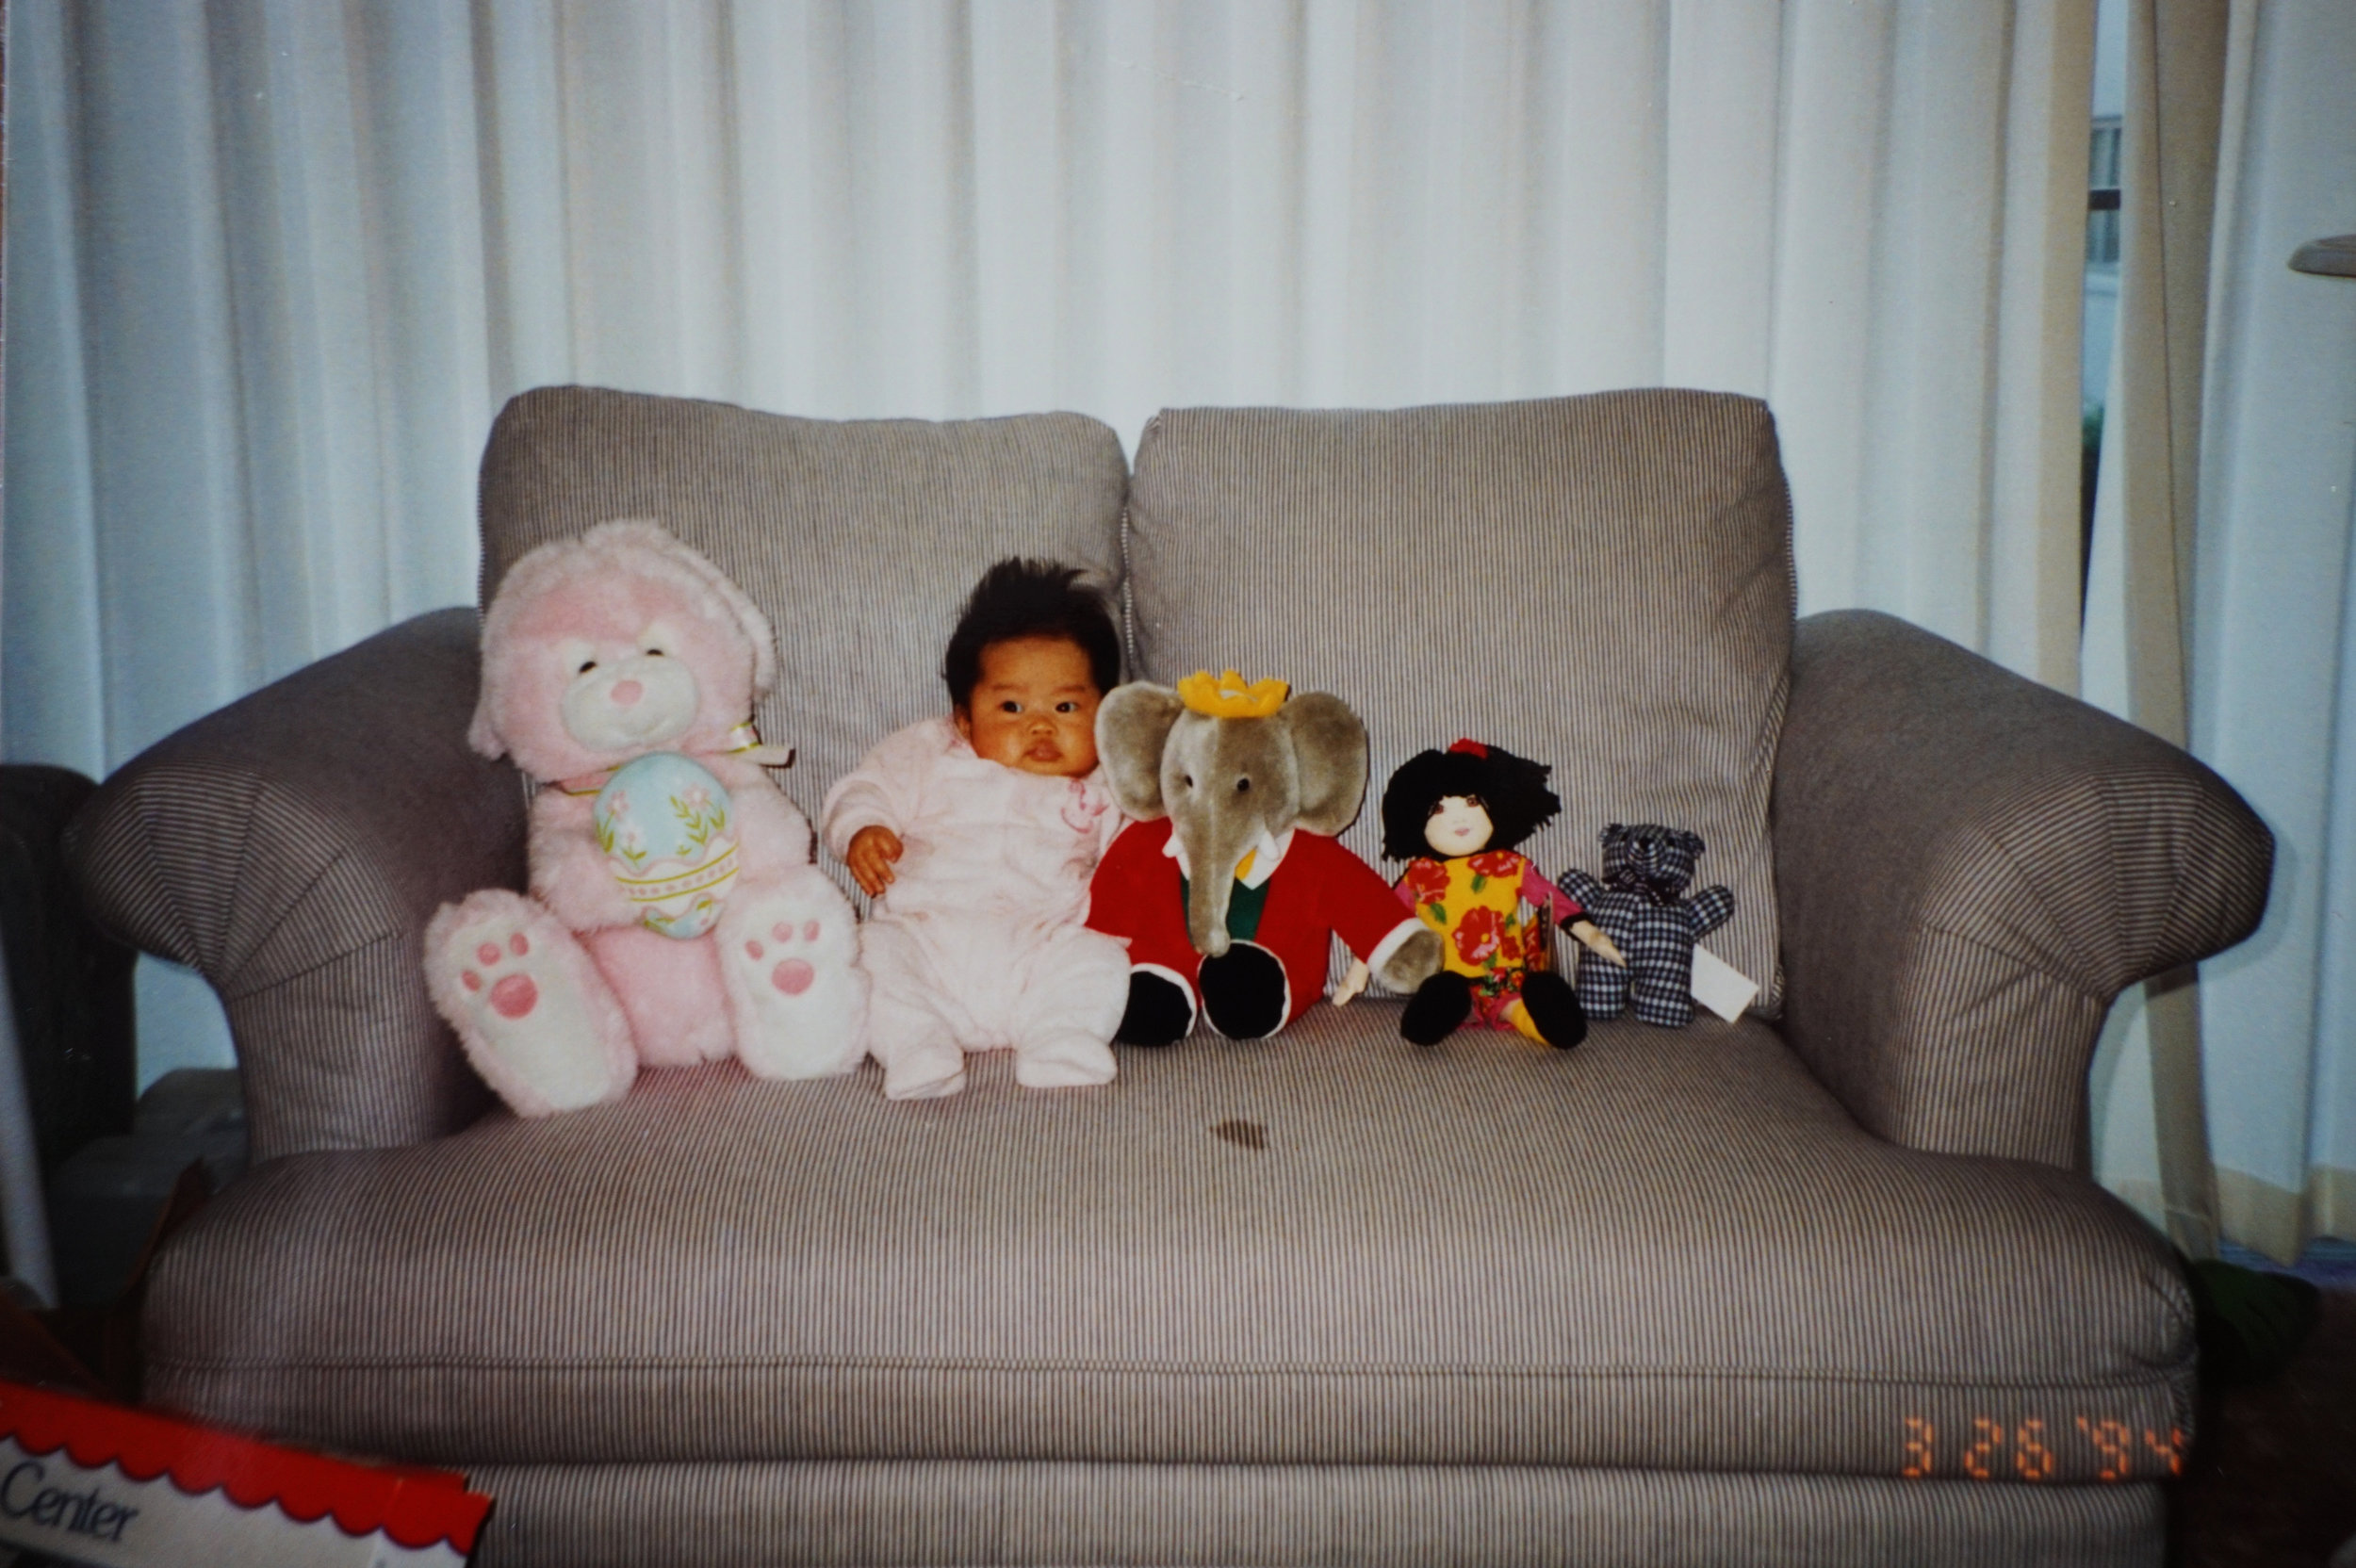 Me and my stuffed animals for scale, 1994